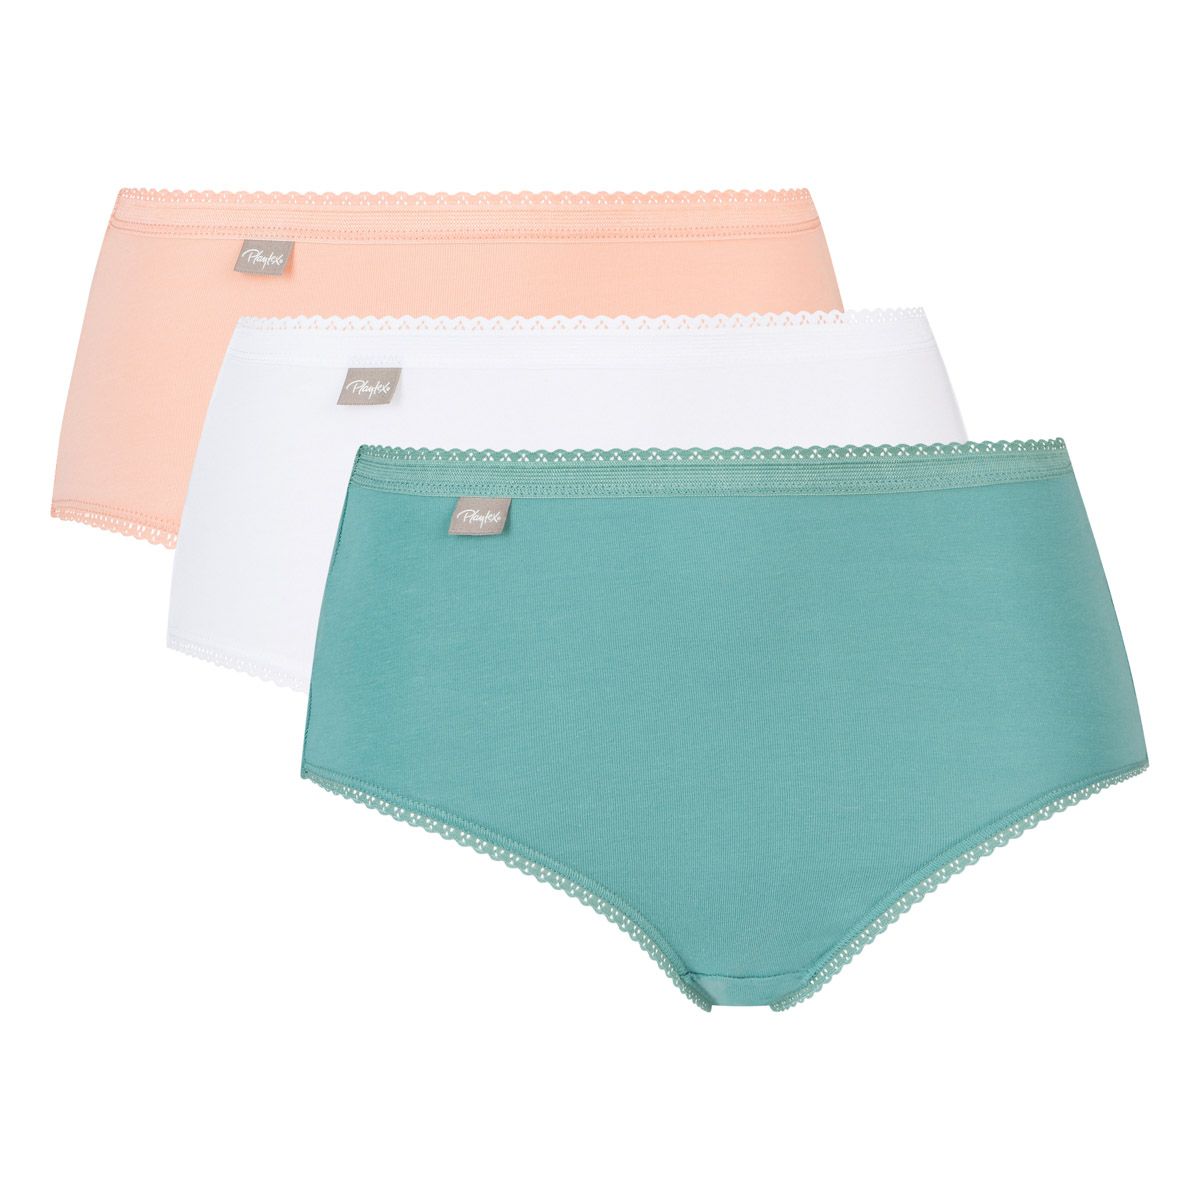 Pack of 3 midi knickers in green, white and baby pink - Cotton Stretch, , PLAYTEX